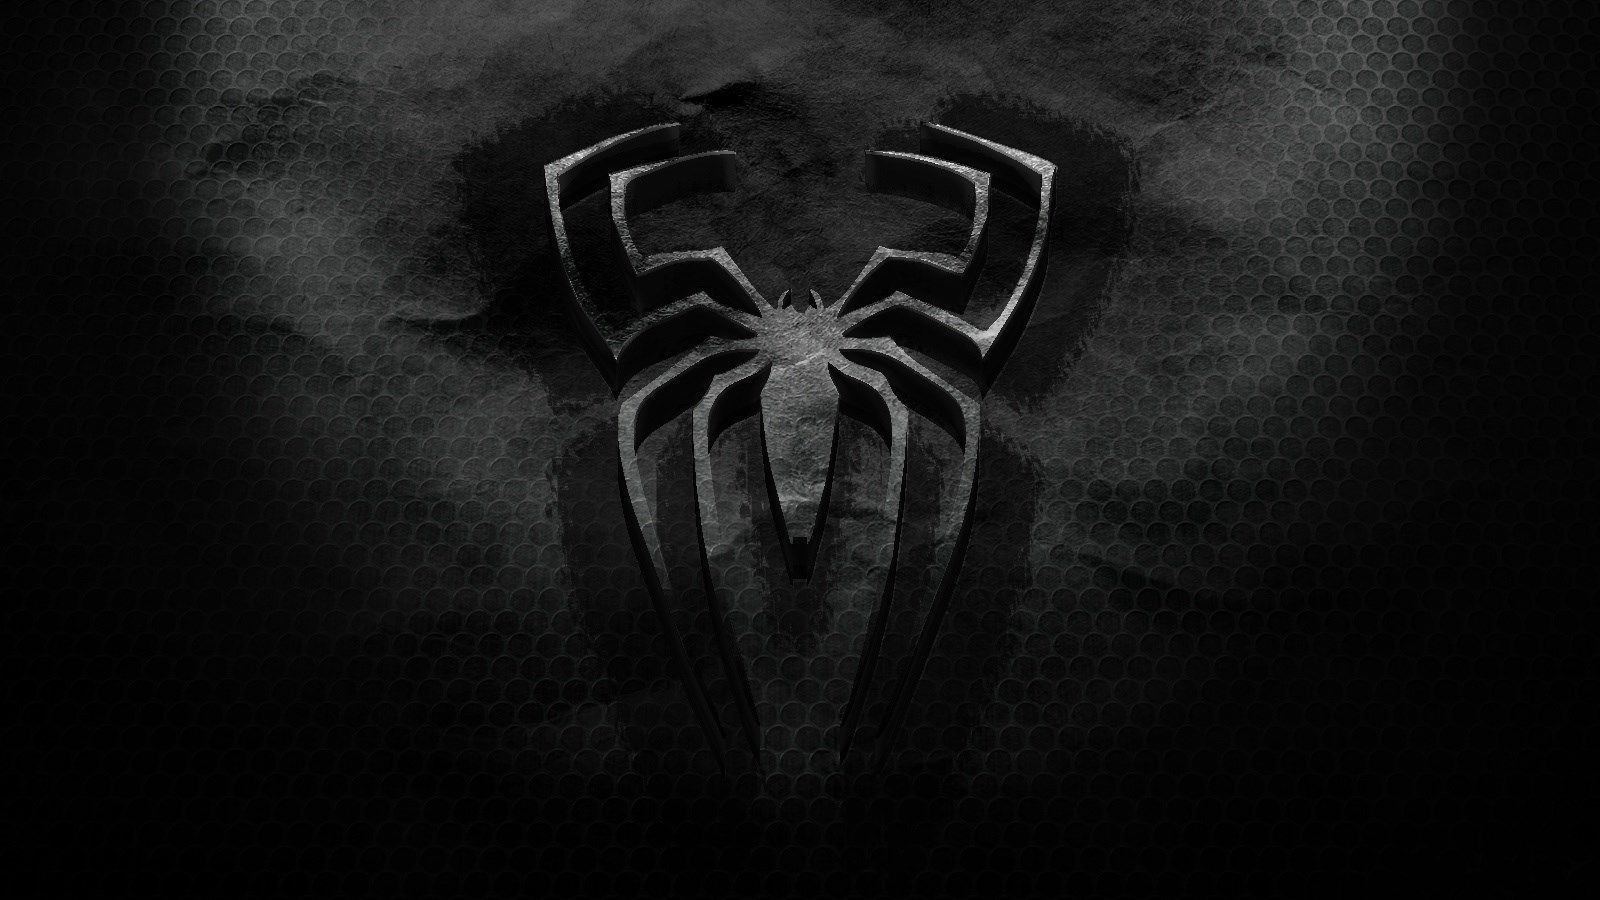 Best Wallpaper Mac Spiderman - 582b5edd31dea53b2432e41e5fad5332  Perfect Image Reference_18912.jpg